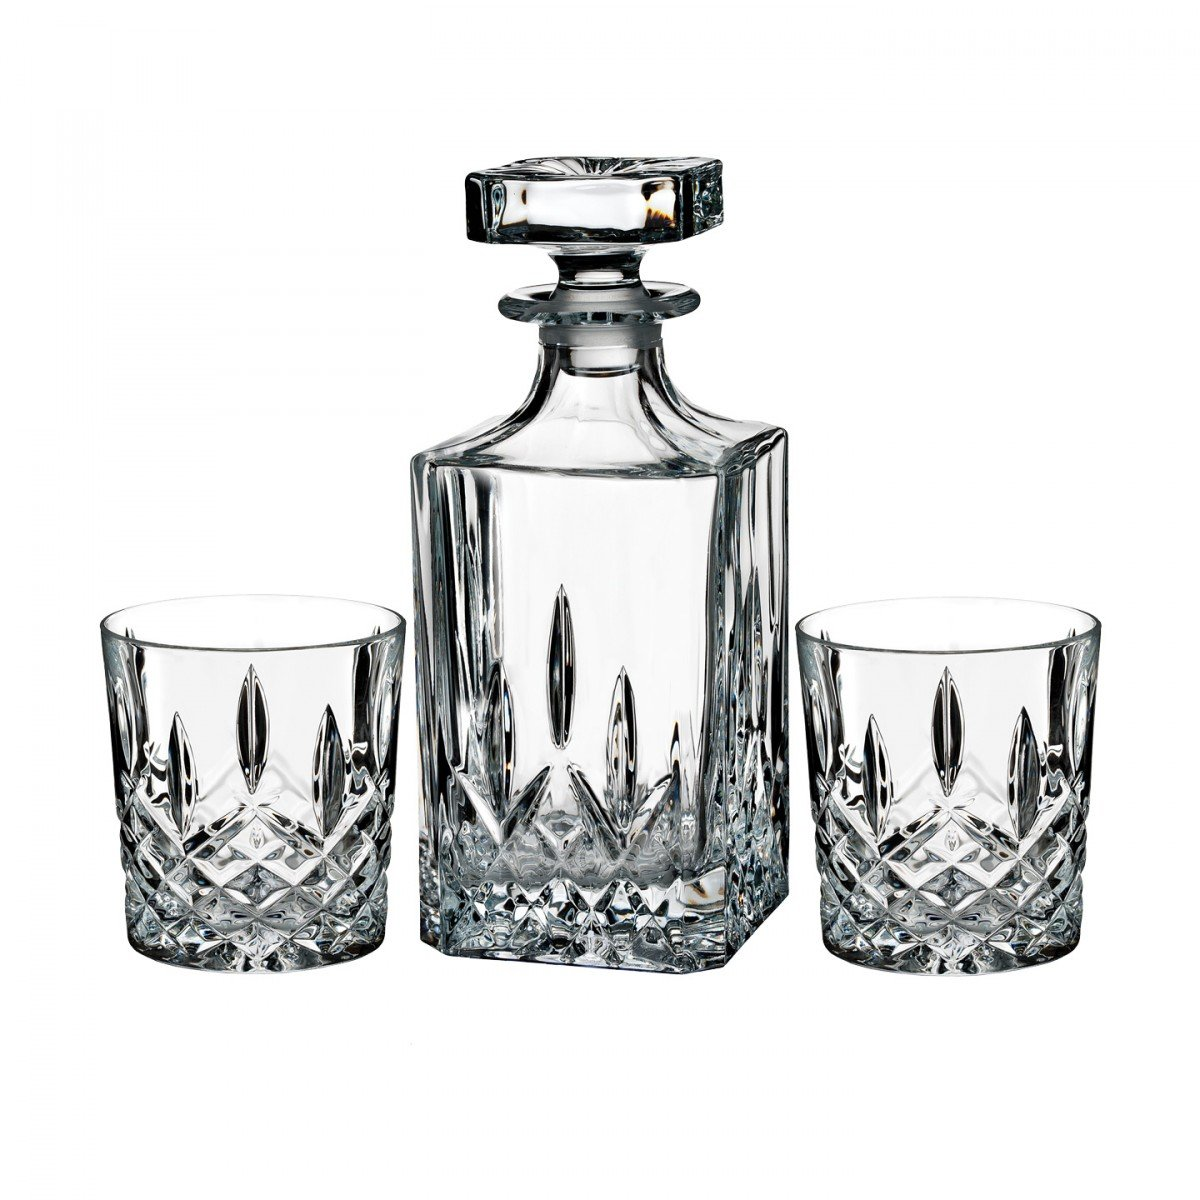 Amazon marquis by waterford markham 11 ounce double old amazon marquis by waterford markham 11 ounce double old fashioned glasses pair and square decanter set unleaded crystal home kitchen reviewsmspy